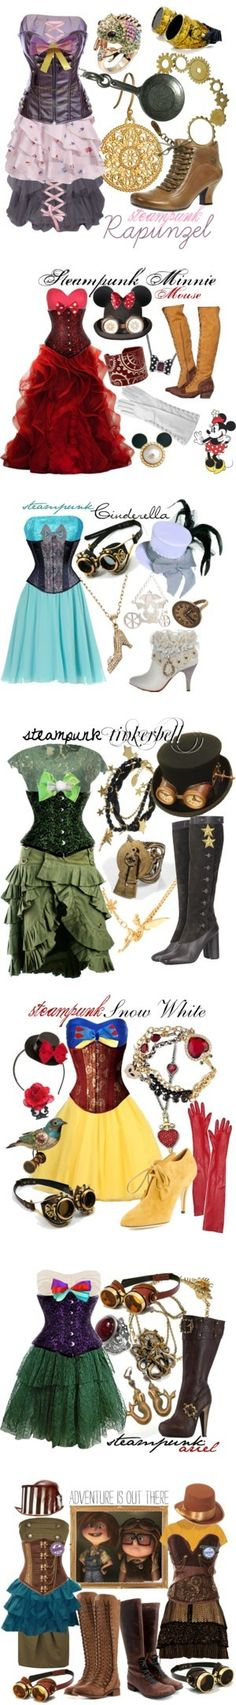 Fashion/Disney Steampunk style